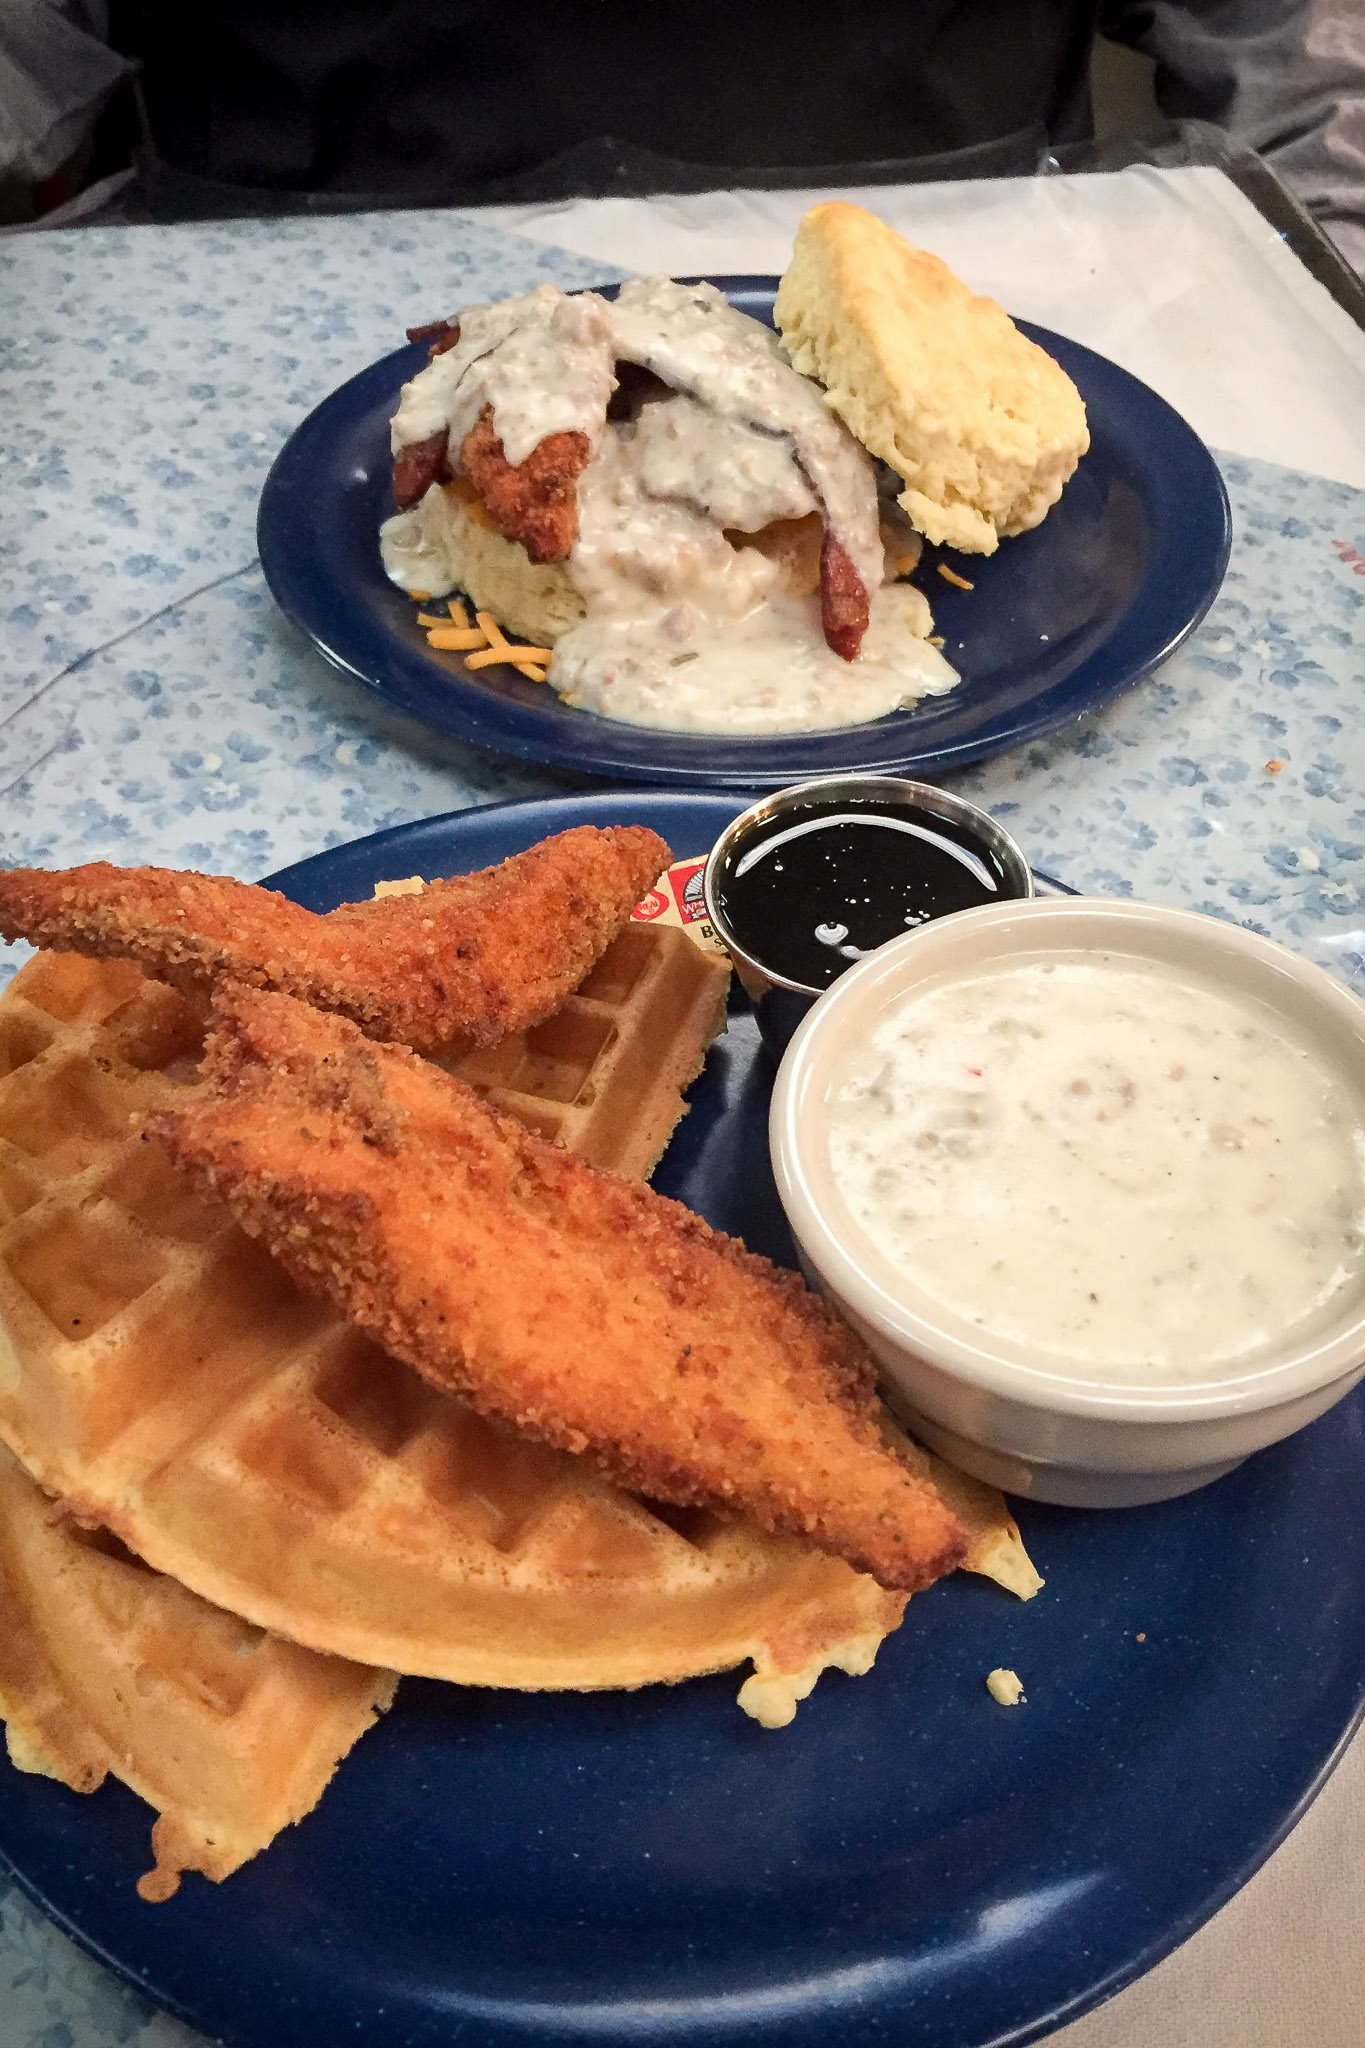 Breakfast at Blue Ridge Biscuit Company